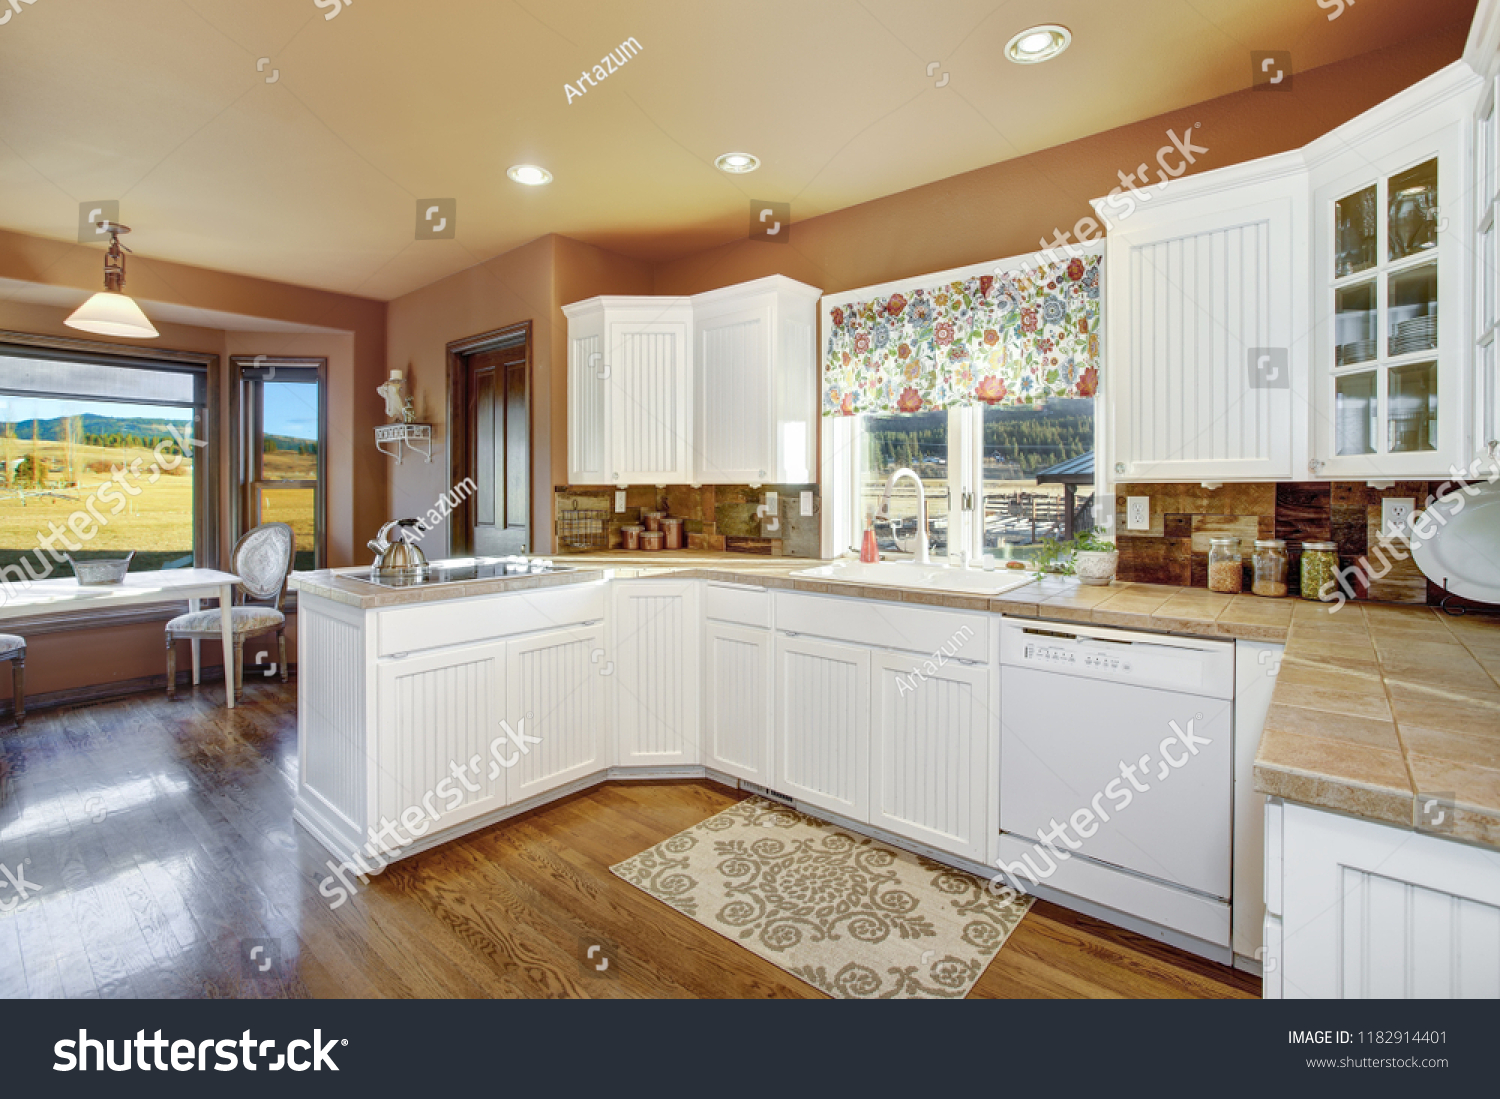 Country Kitchen Features White Cabinets Tile Buildings Landmarks